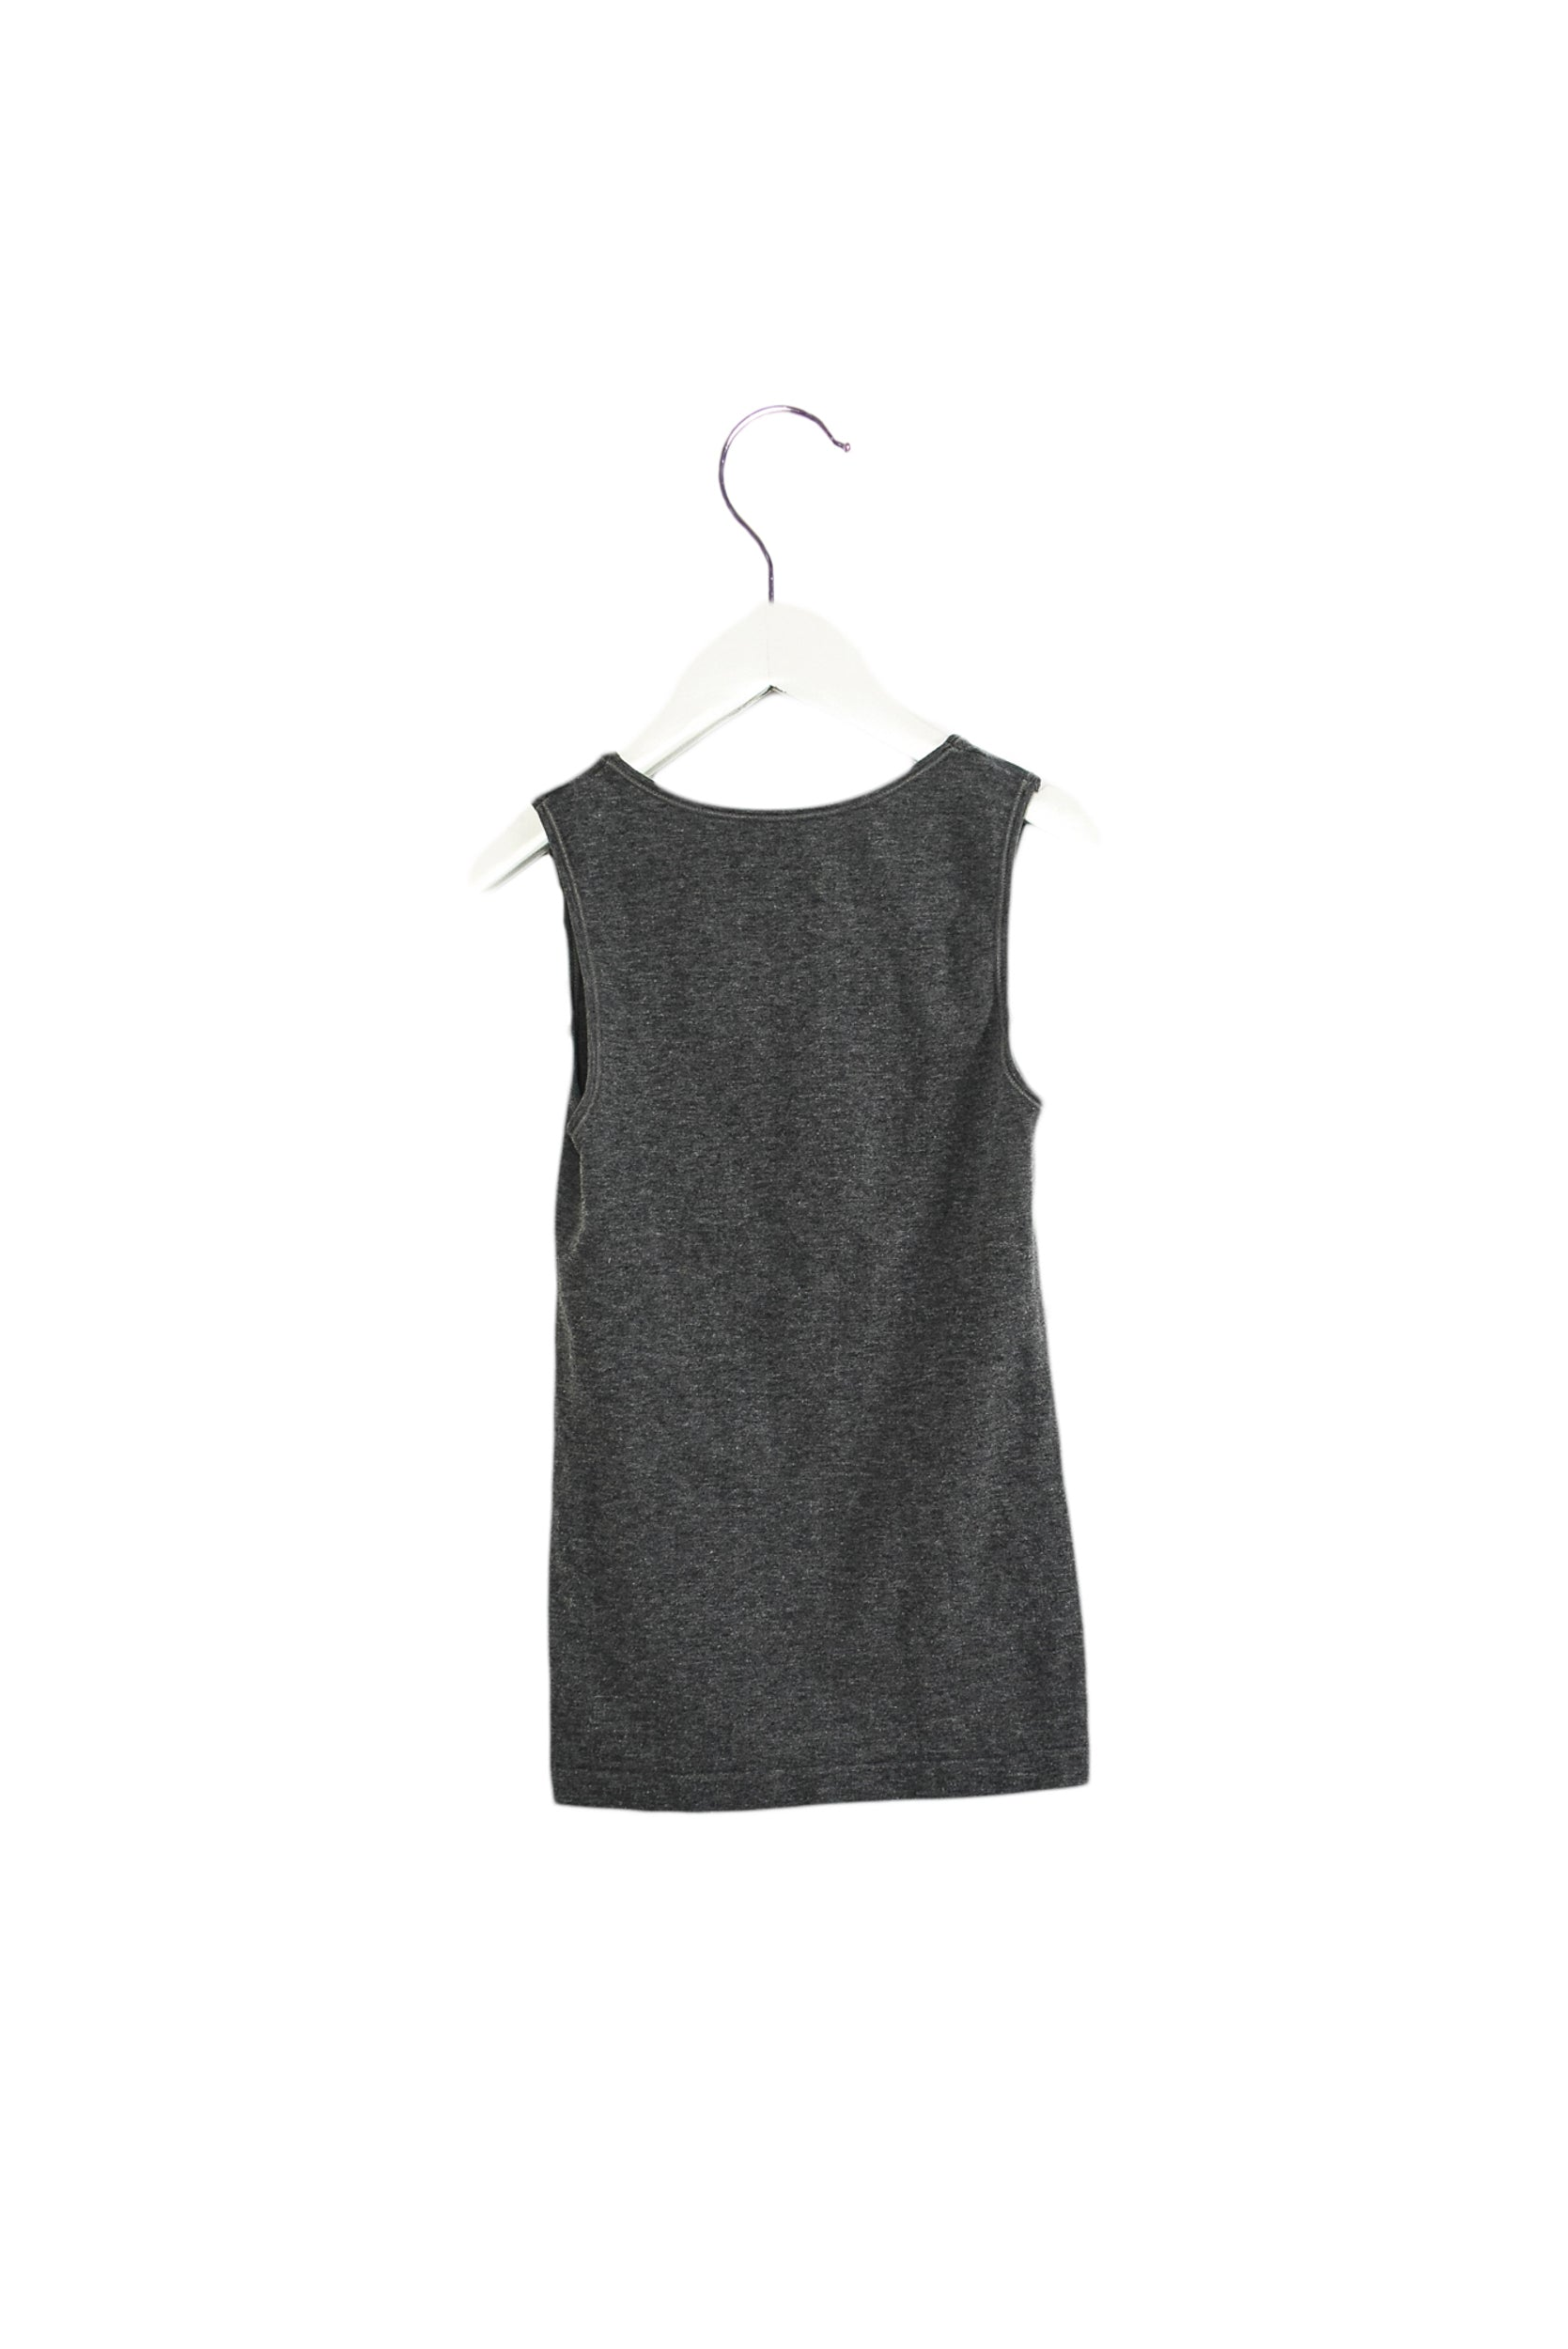 Seed Sleeveless Top 6T - 7Y